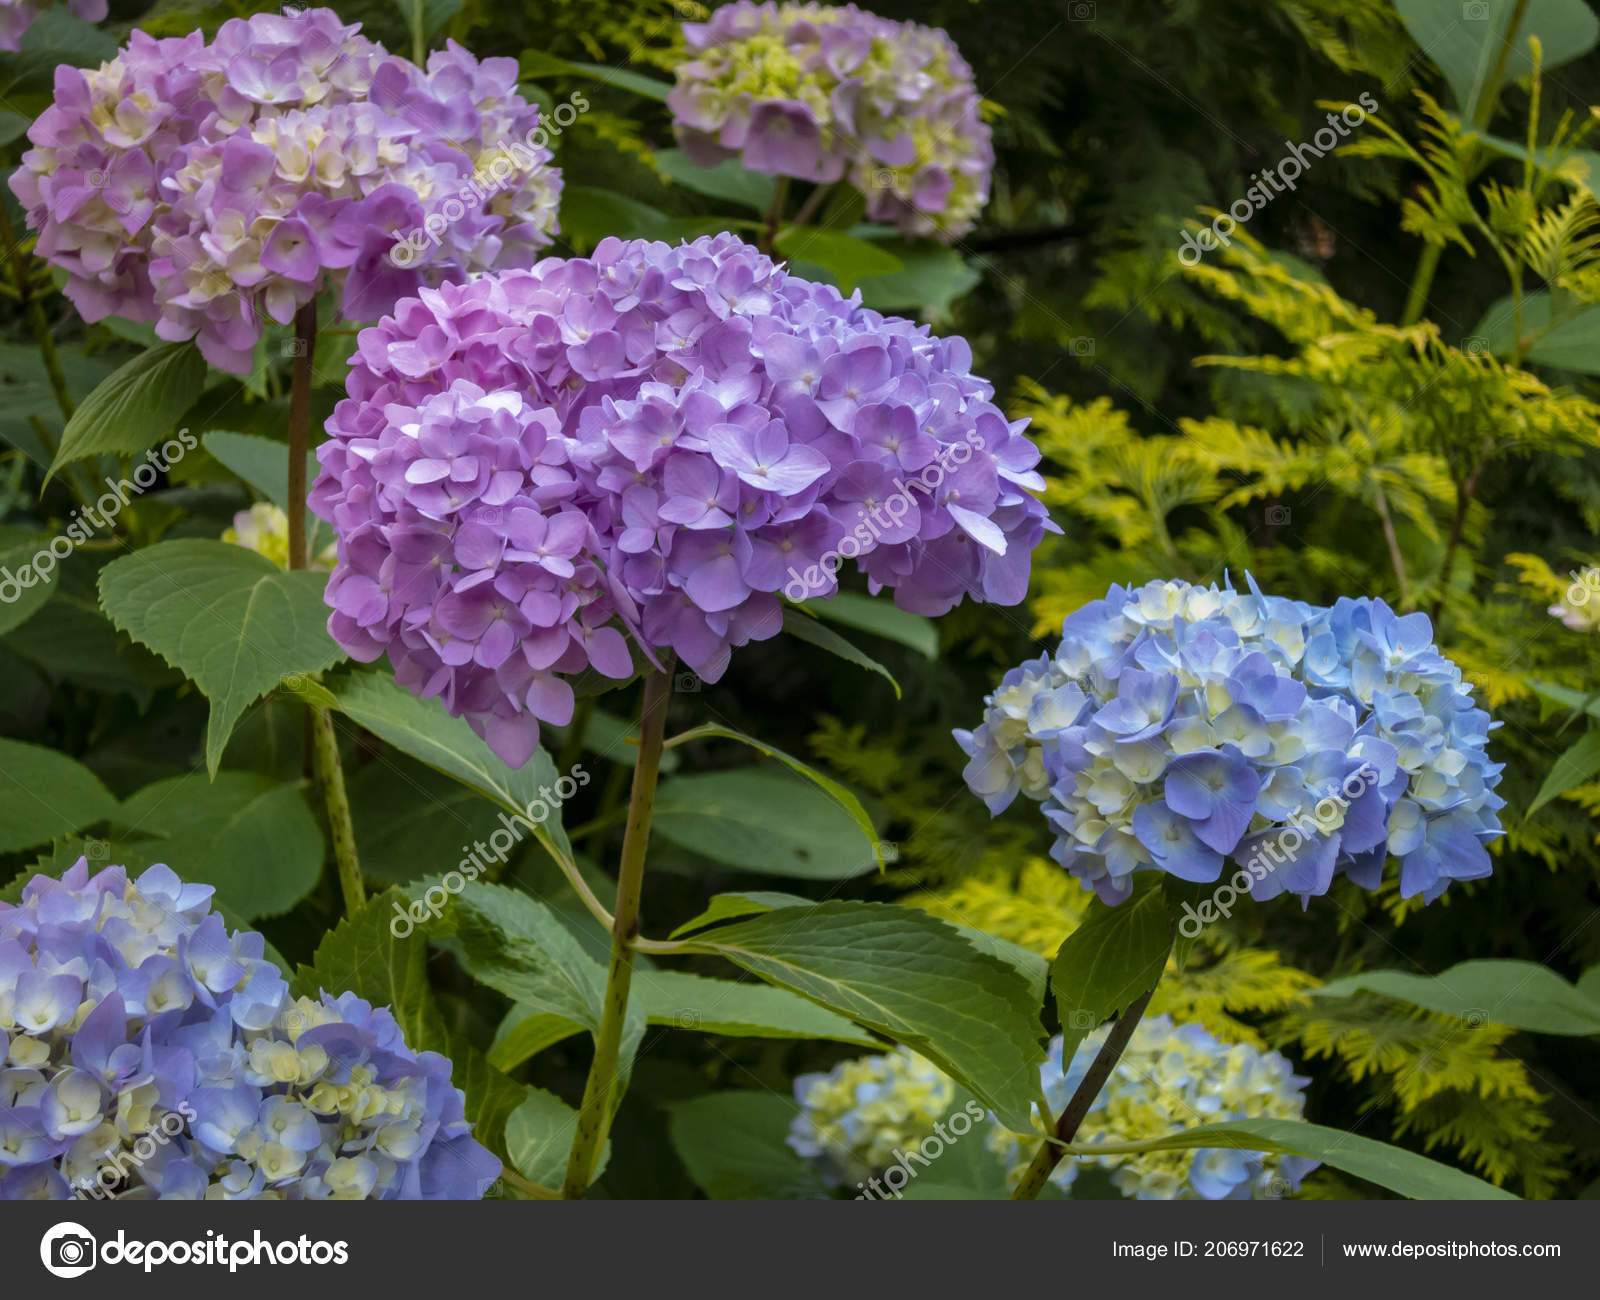 Macro multicolored pink blue flowers hydrangea macrophylla macro multicolored pink blue flowers hydrangea macrophylla background flowering bush stock photo izmirmasajfo